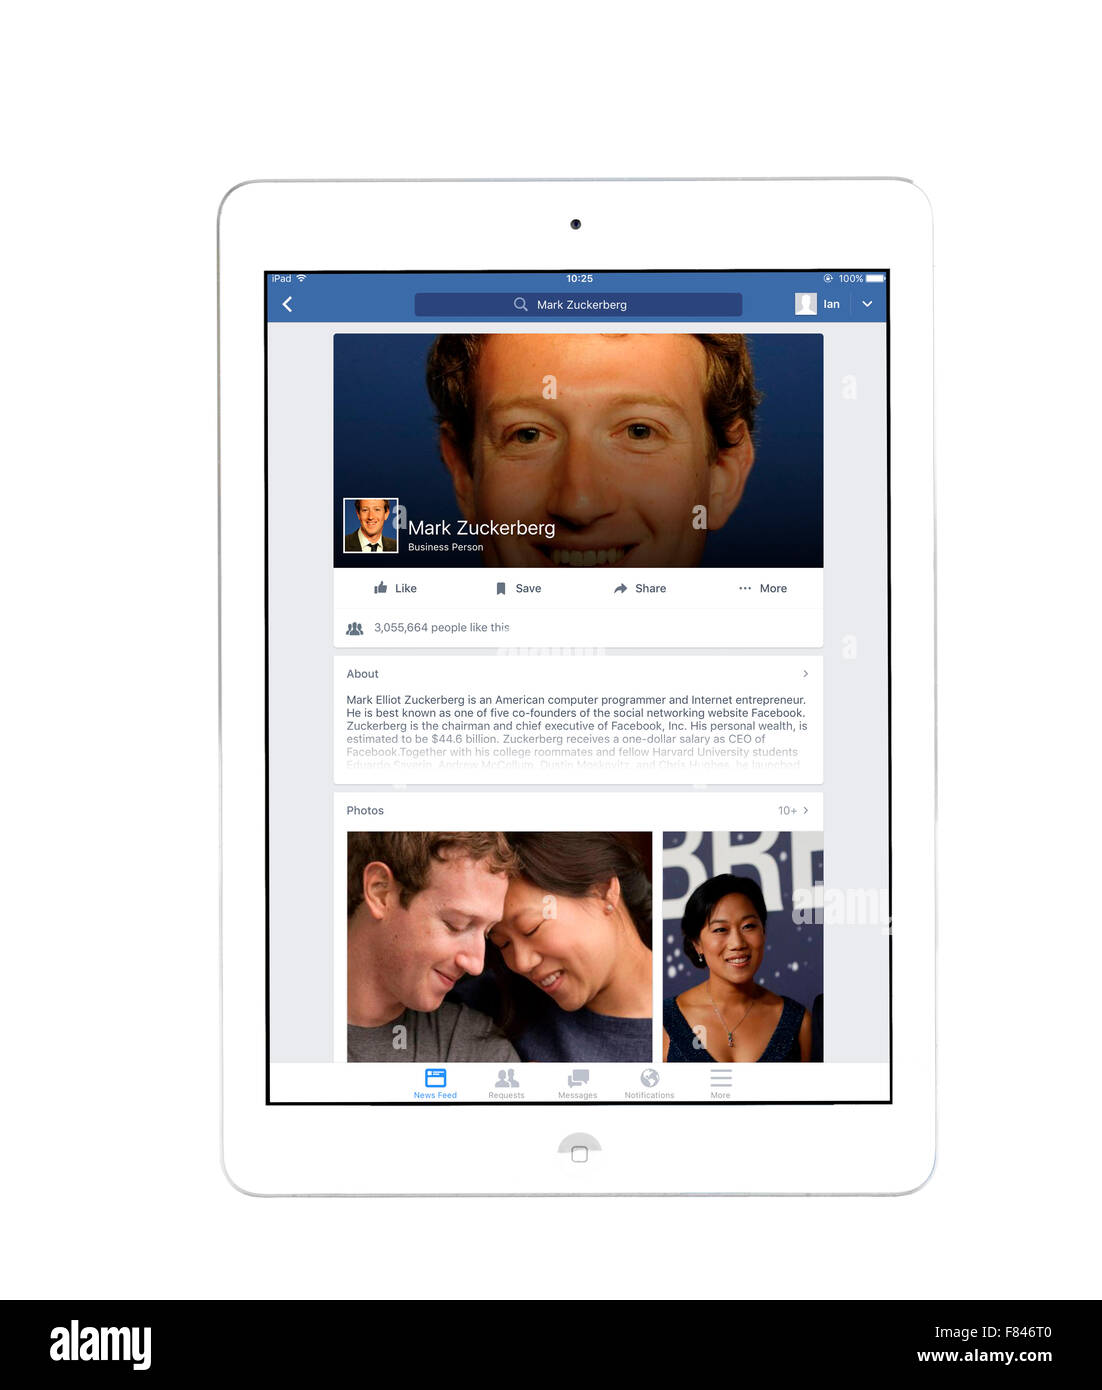 Mark Zuckerberg's home page sur l'application Facebook, vue sur un iPad Air Photo Stock